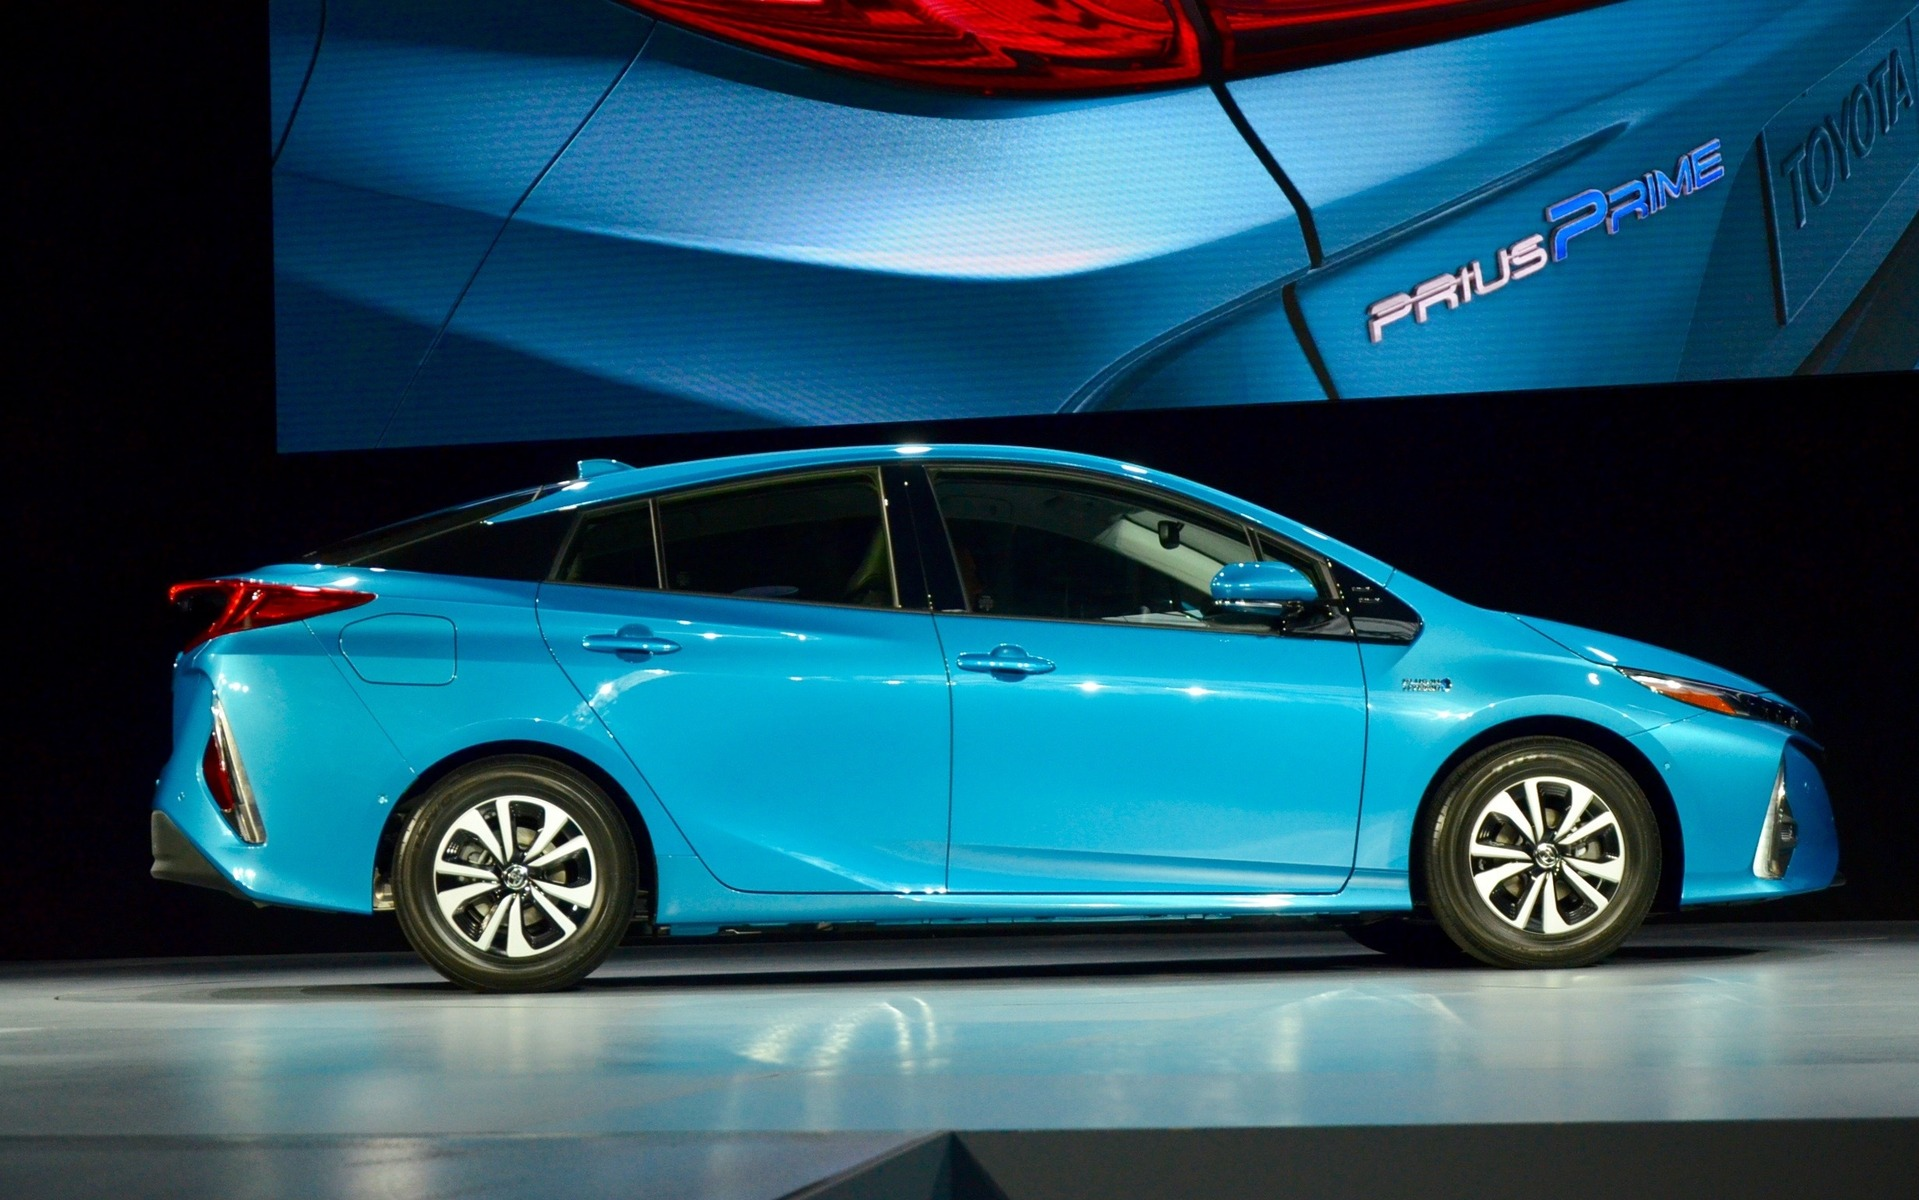 Used Toyota Prius >> 2017 Toyota Prius Prime: New Plug-in Hybrid Unveiled in New York - 6/10